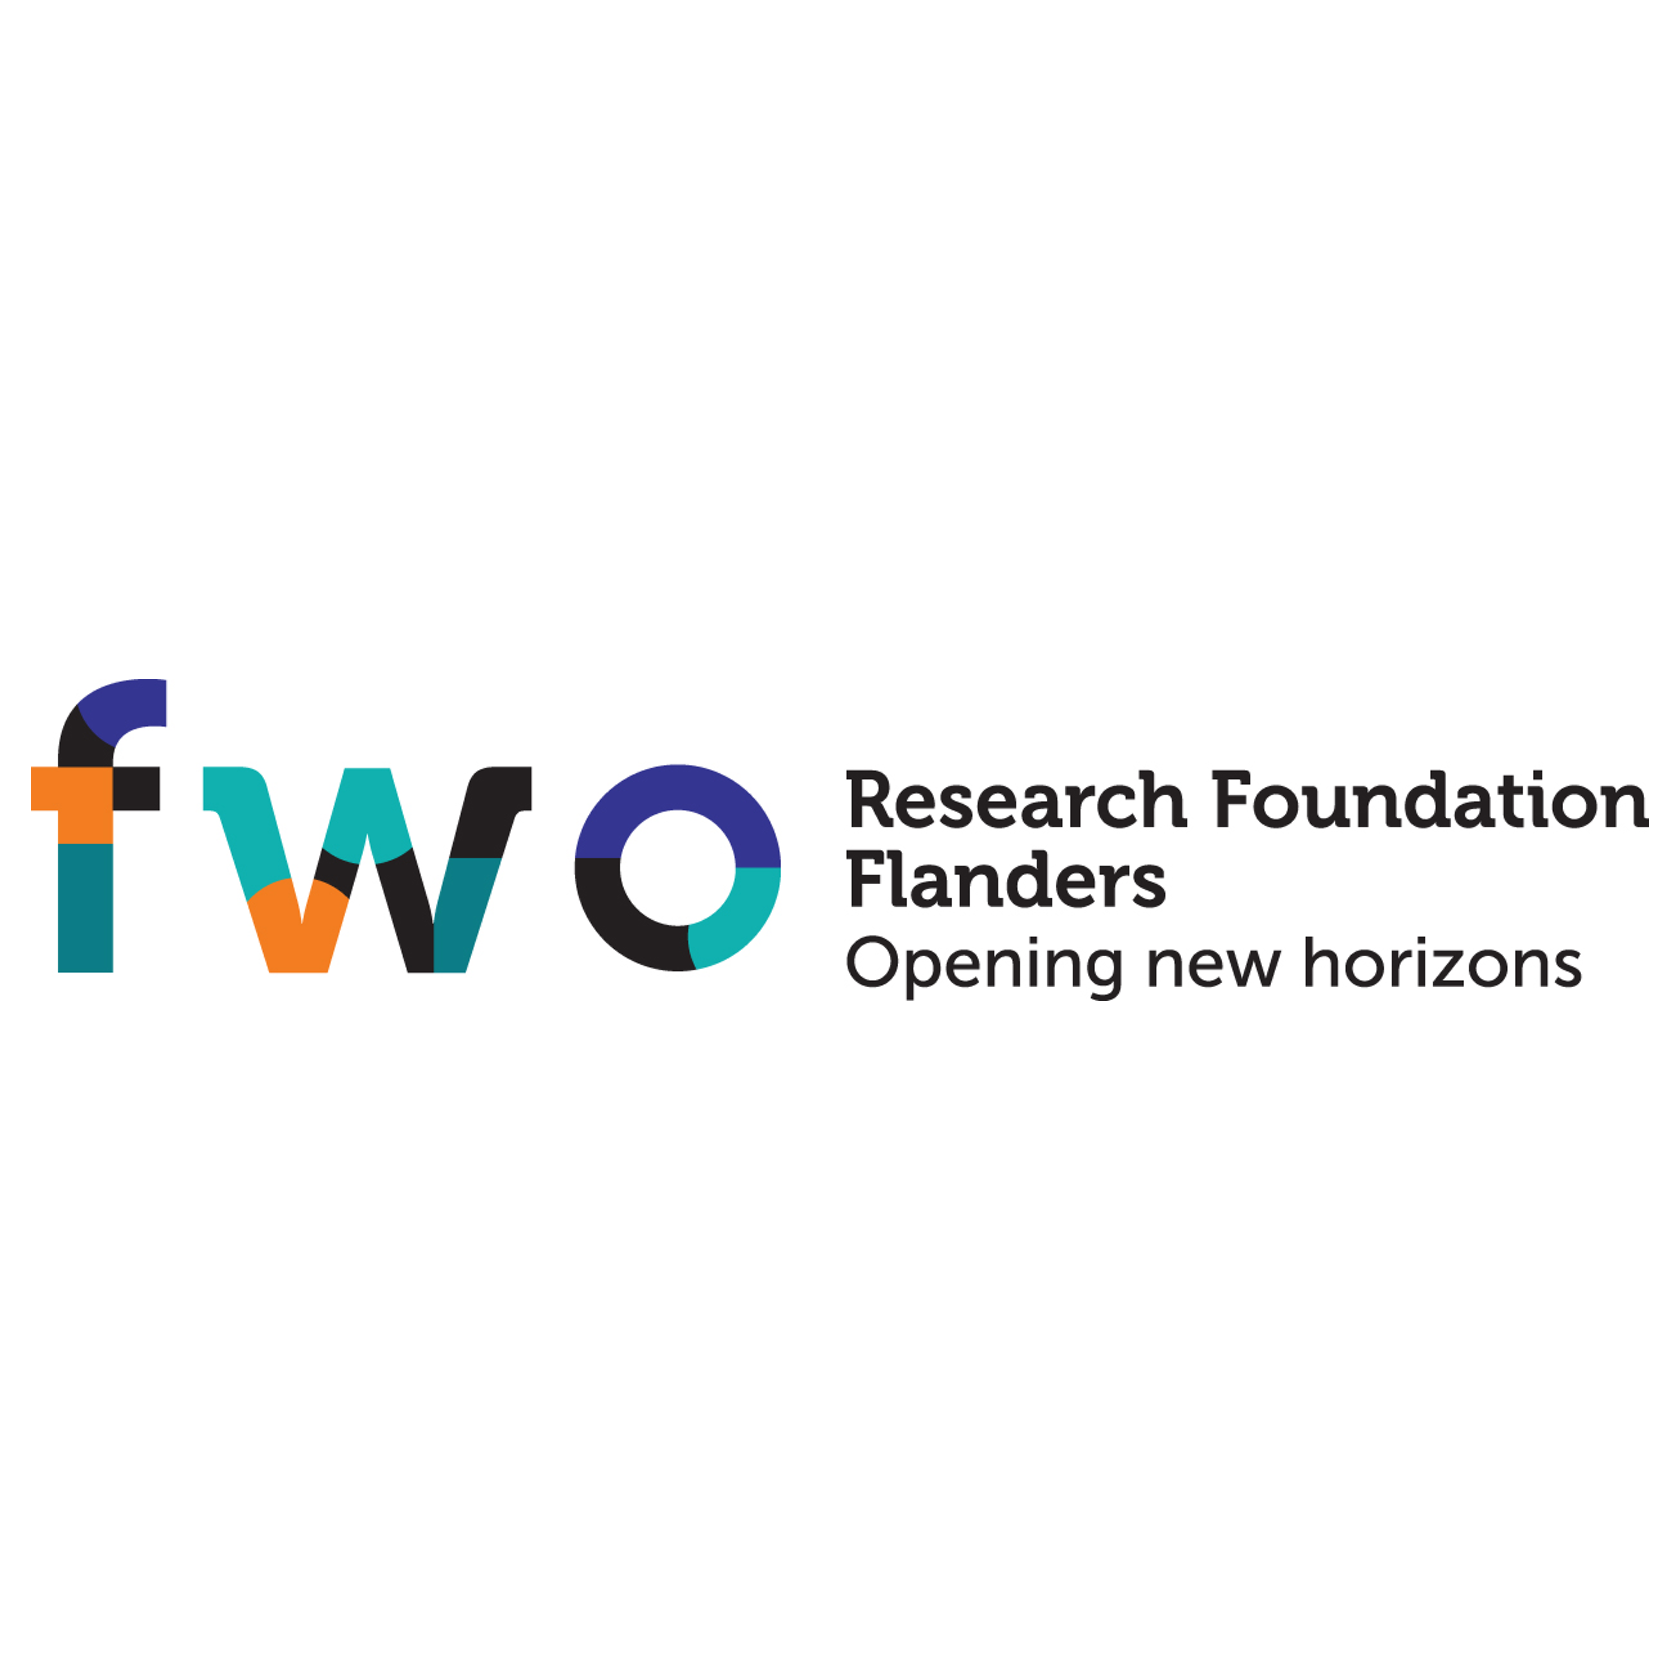 Flanders Research Foundation Logo